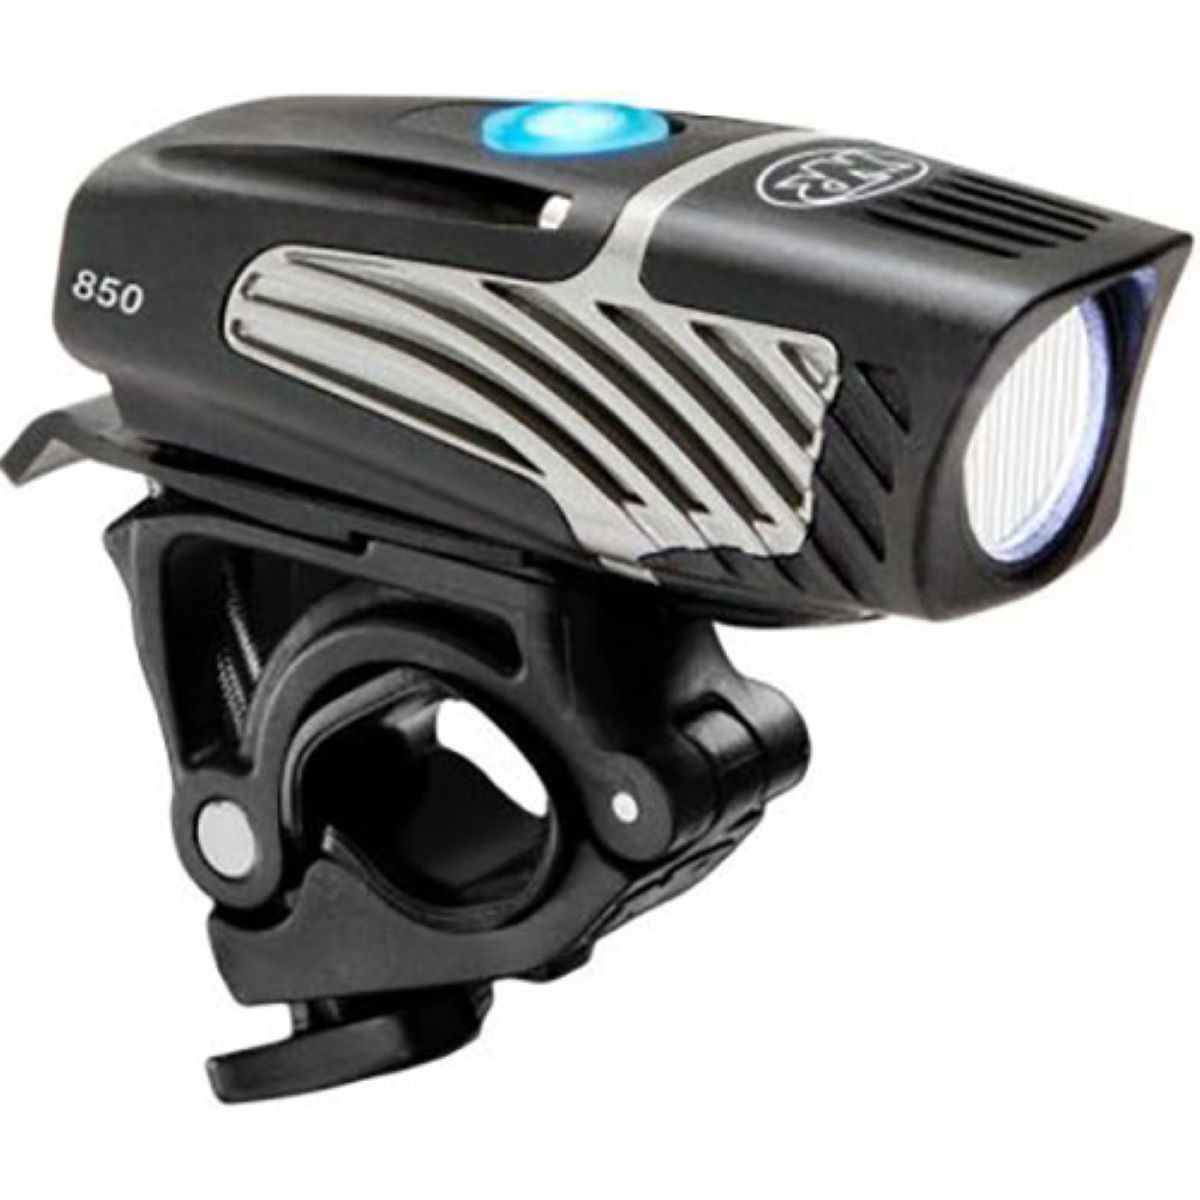 NiteRider Lumina Micro 850 Front Light - Luces delanteras